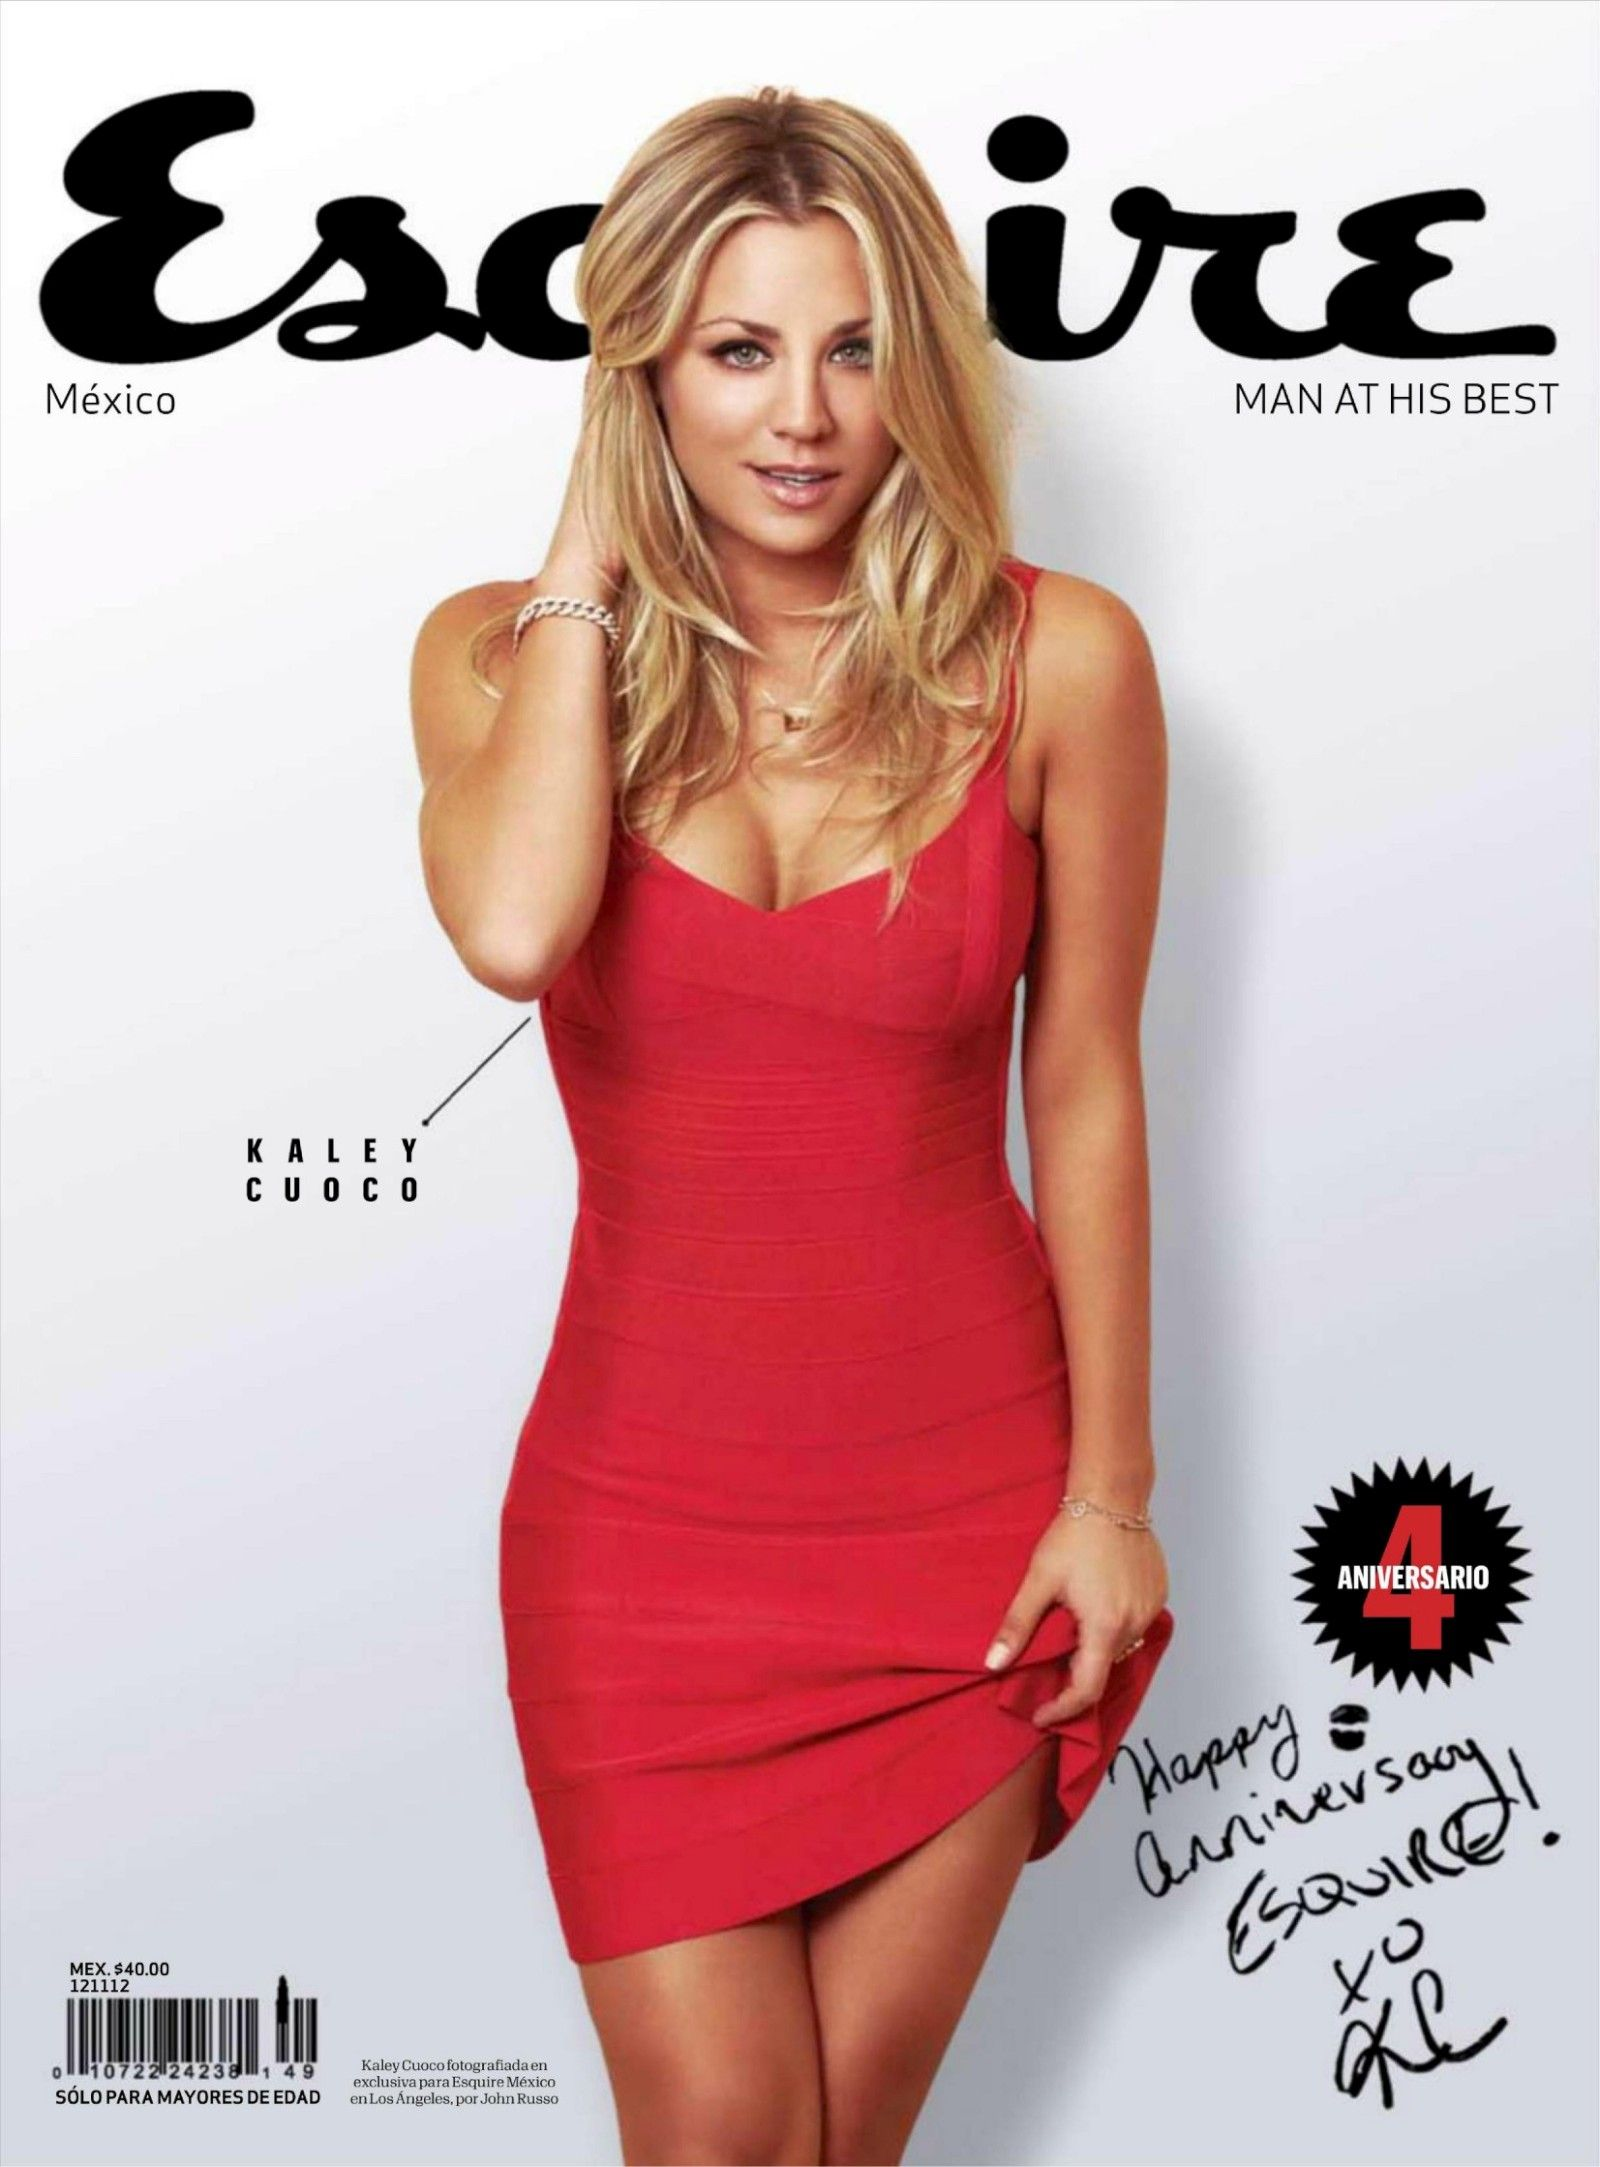 kaley cuoco esquire 2012